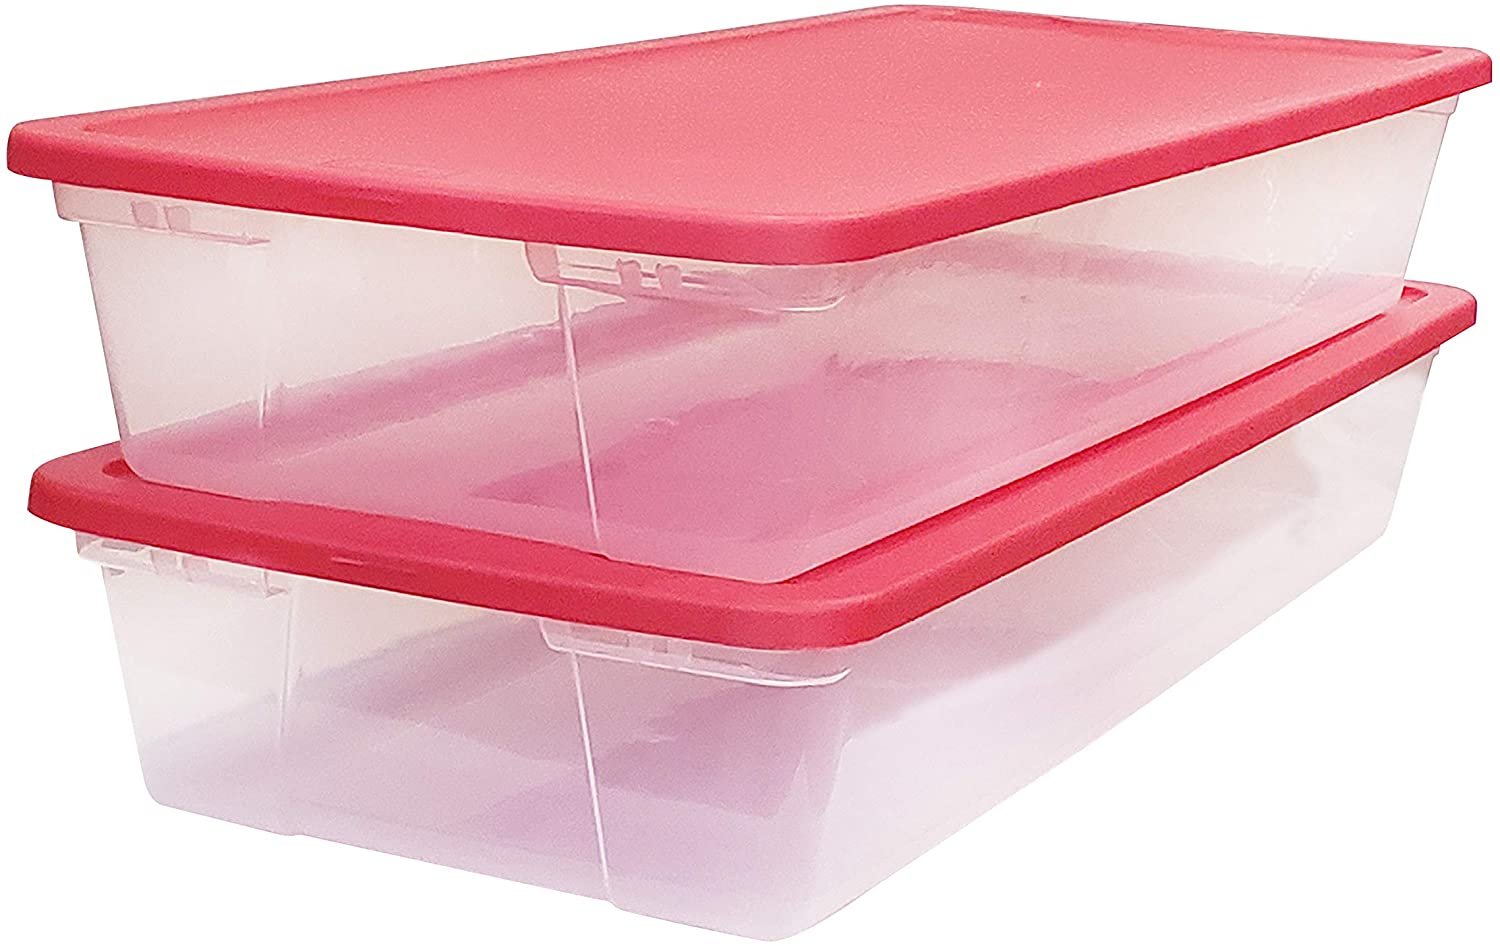 Plastic storage bins with lid that is red